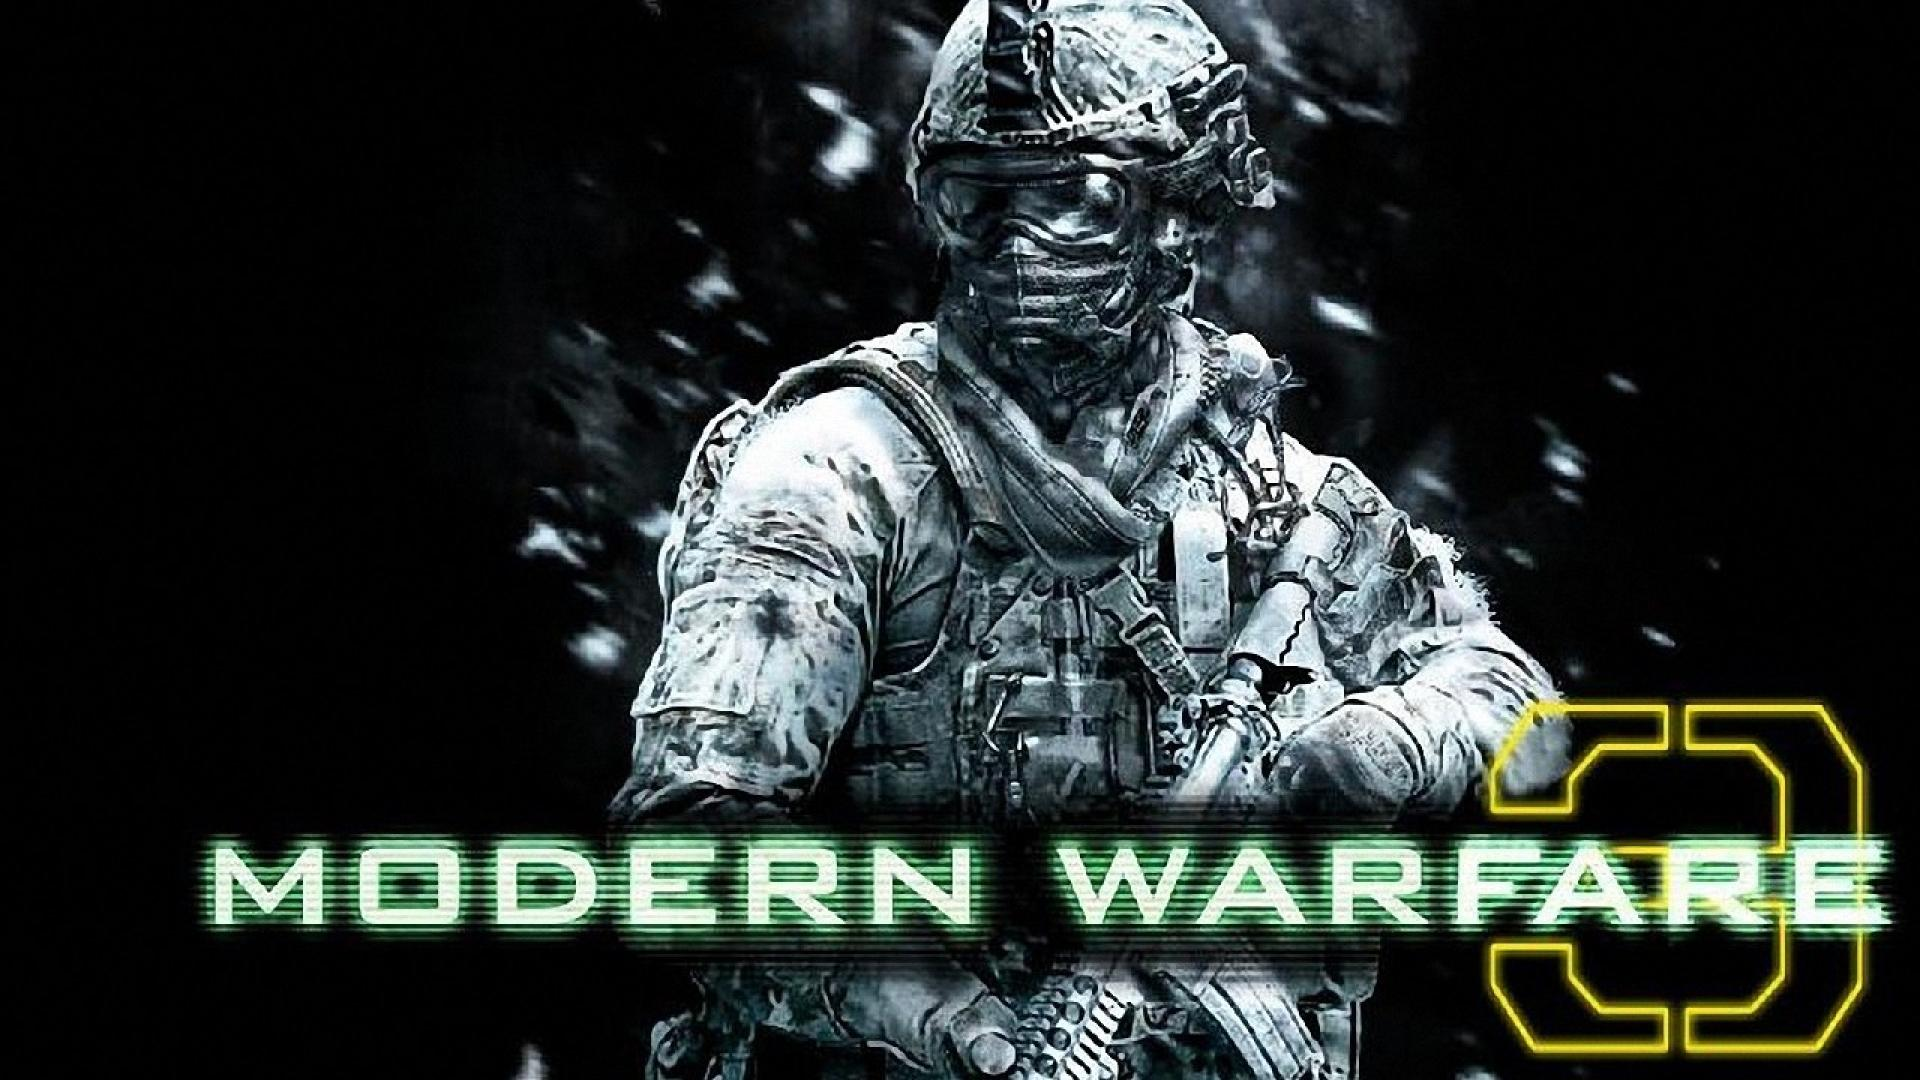 You will download Call of Duty Modern Warfare 3 resolution is 1920x1080